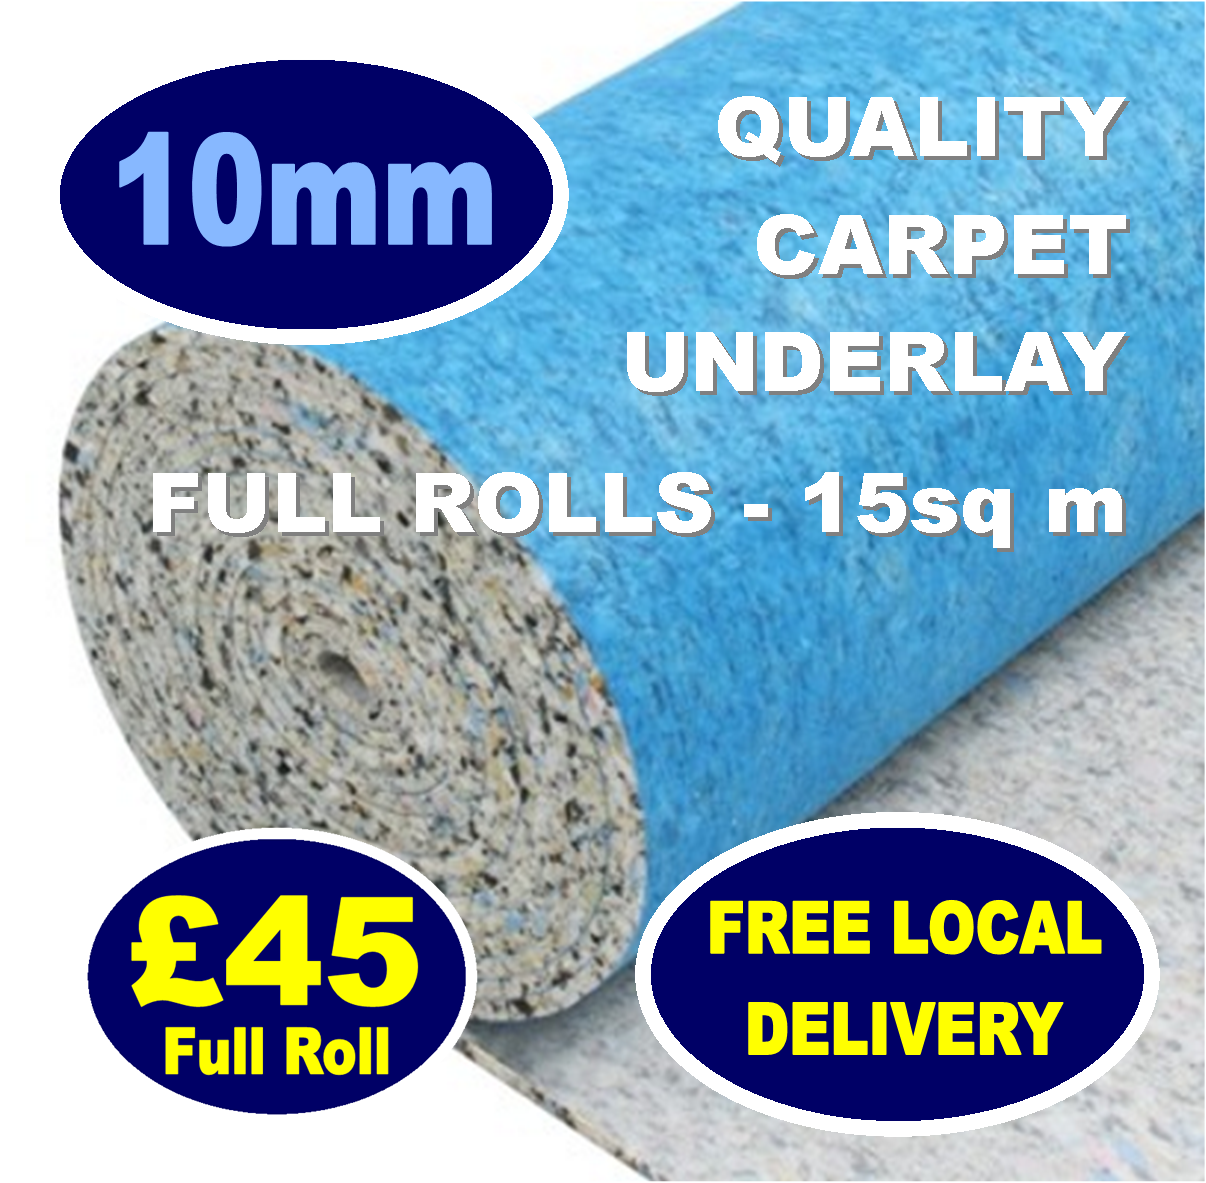 10mm underlay. Supply only from Carpets Weekly